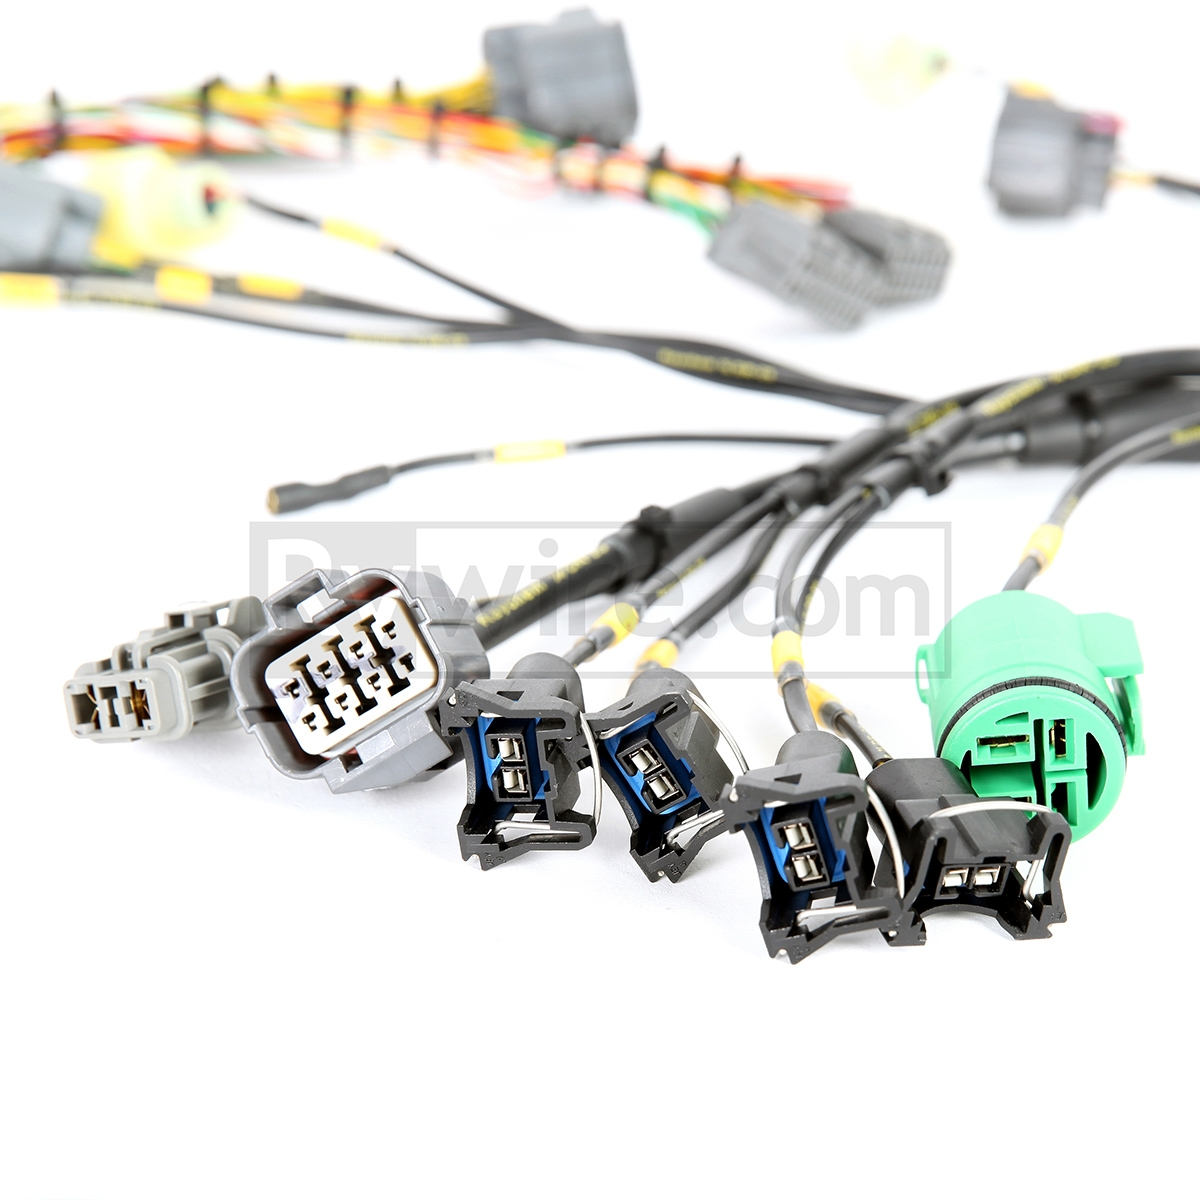 B1 Milspec 3?1402488654 obd1 mil spec d & b series tucked engine harness engine wiring harness connectors at edmiracle.co